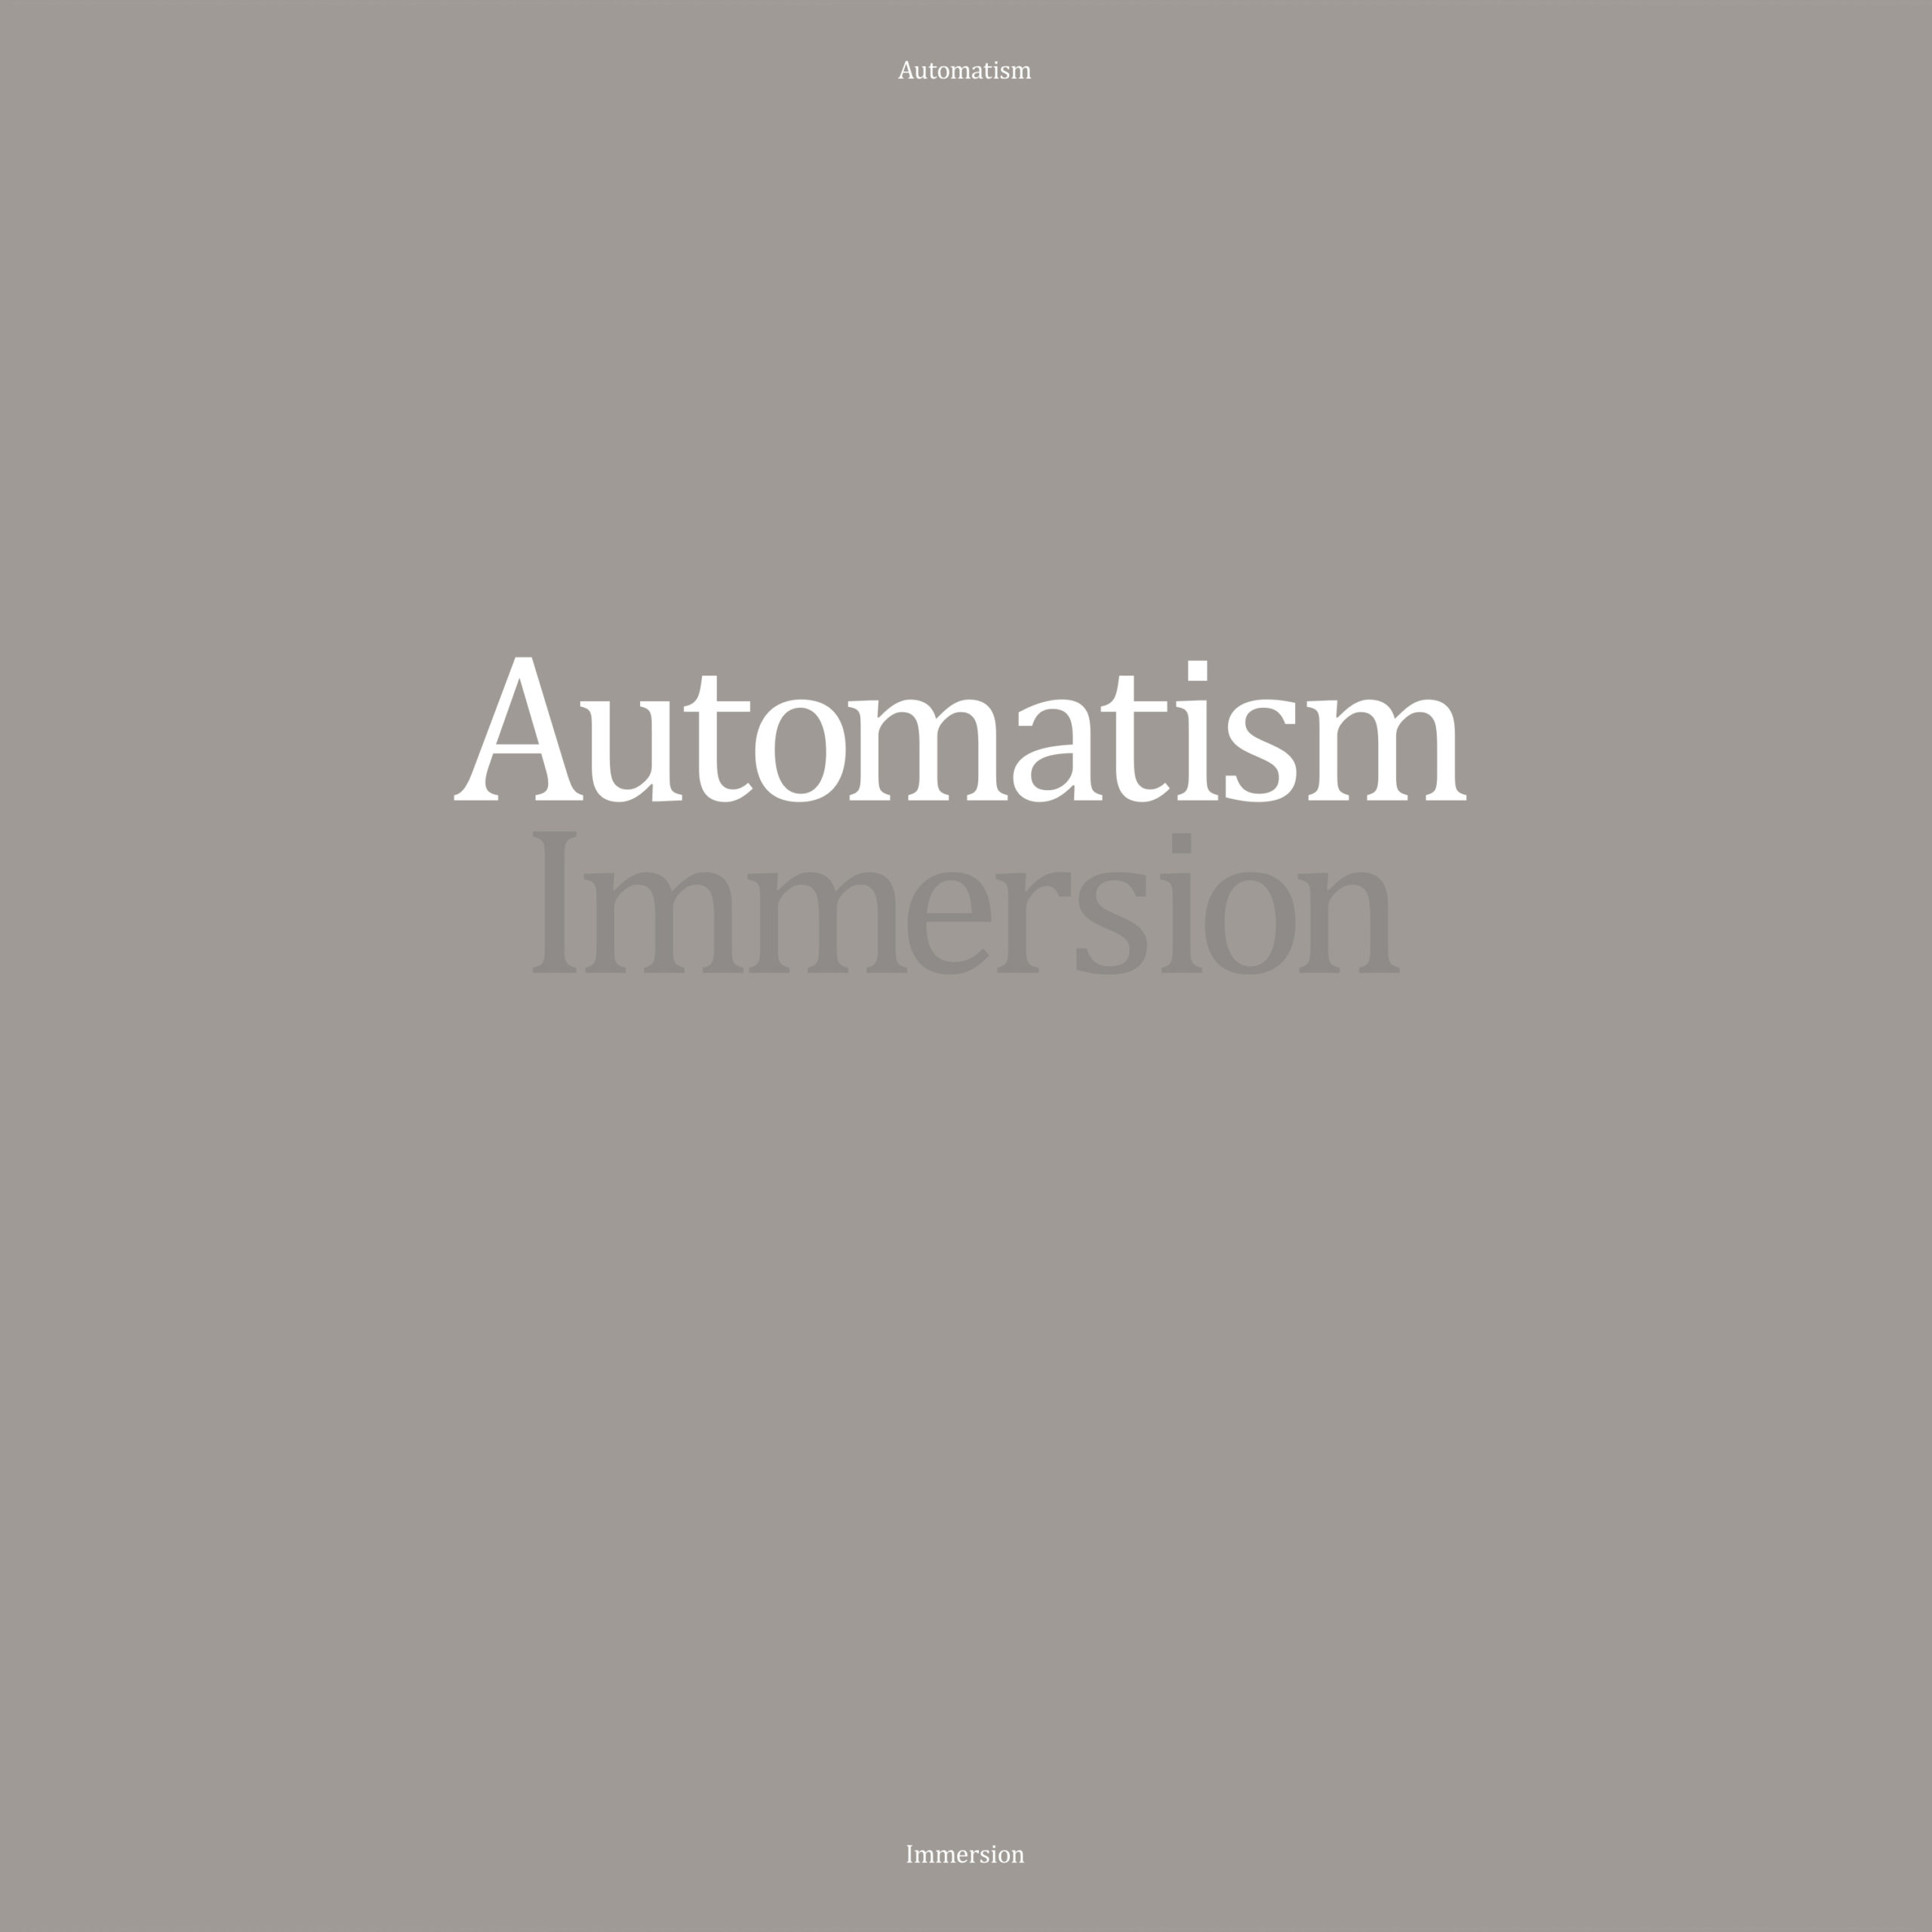 automatism immersion